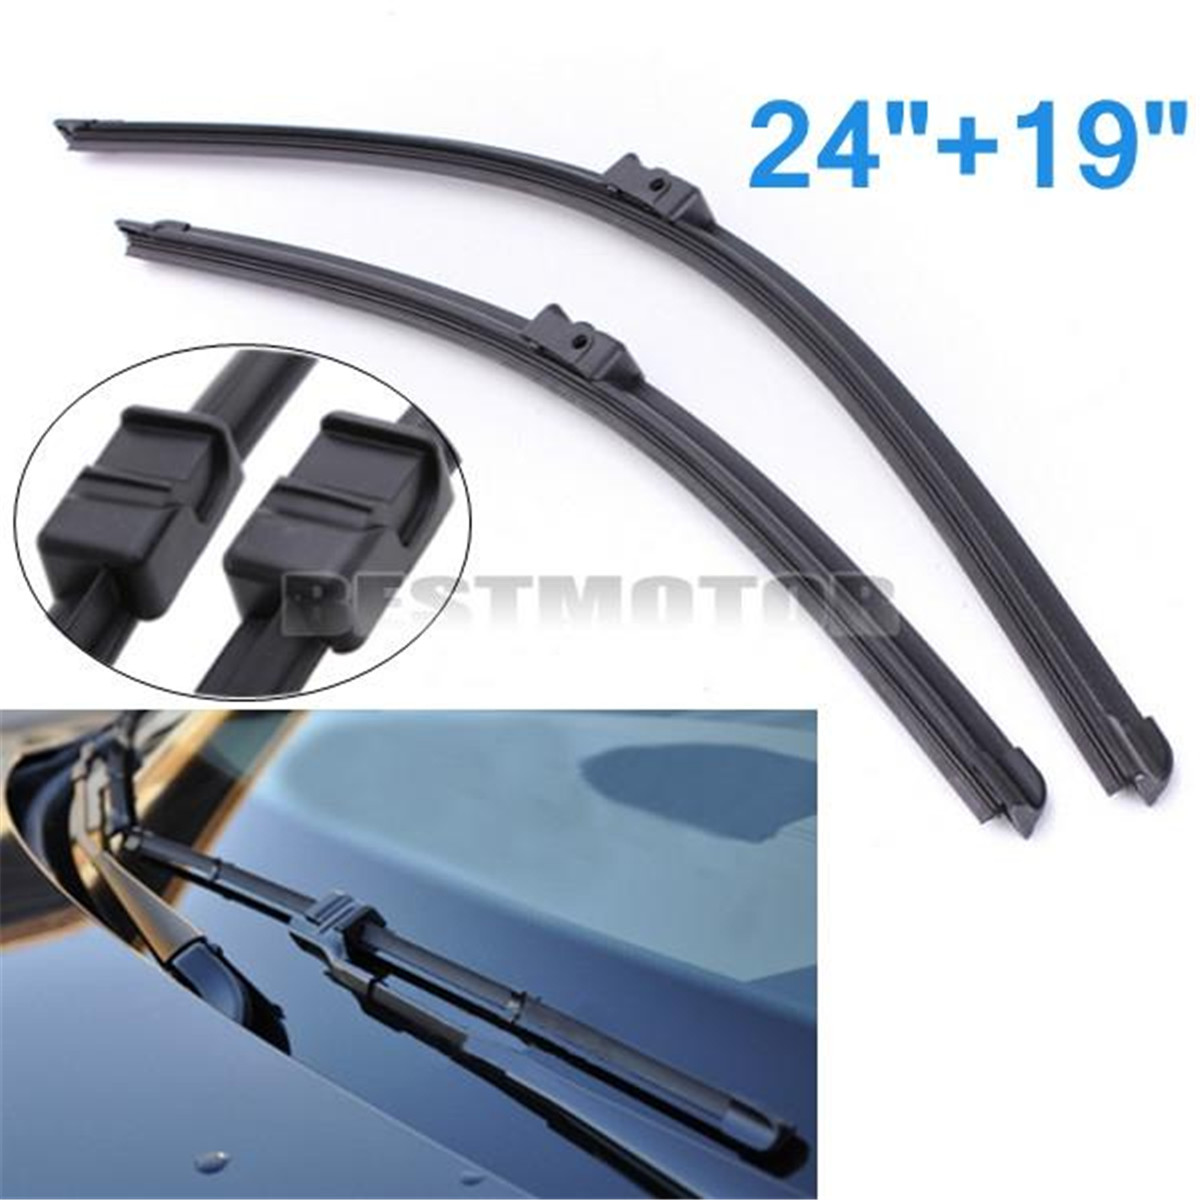 2010 audi a3 wiper blade manual today manual guide trends sample u2022 rh brookejasmine co 2002 Audi A4 2003 Audi A4